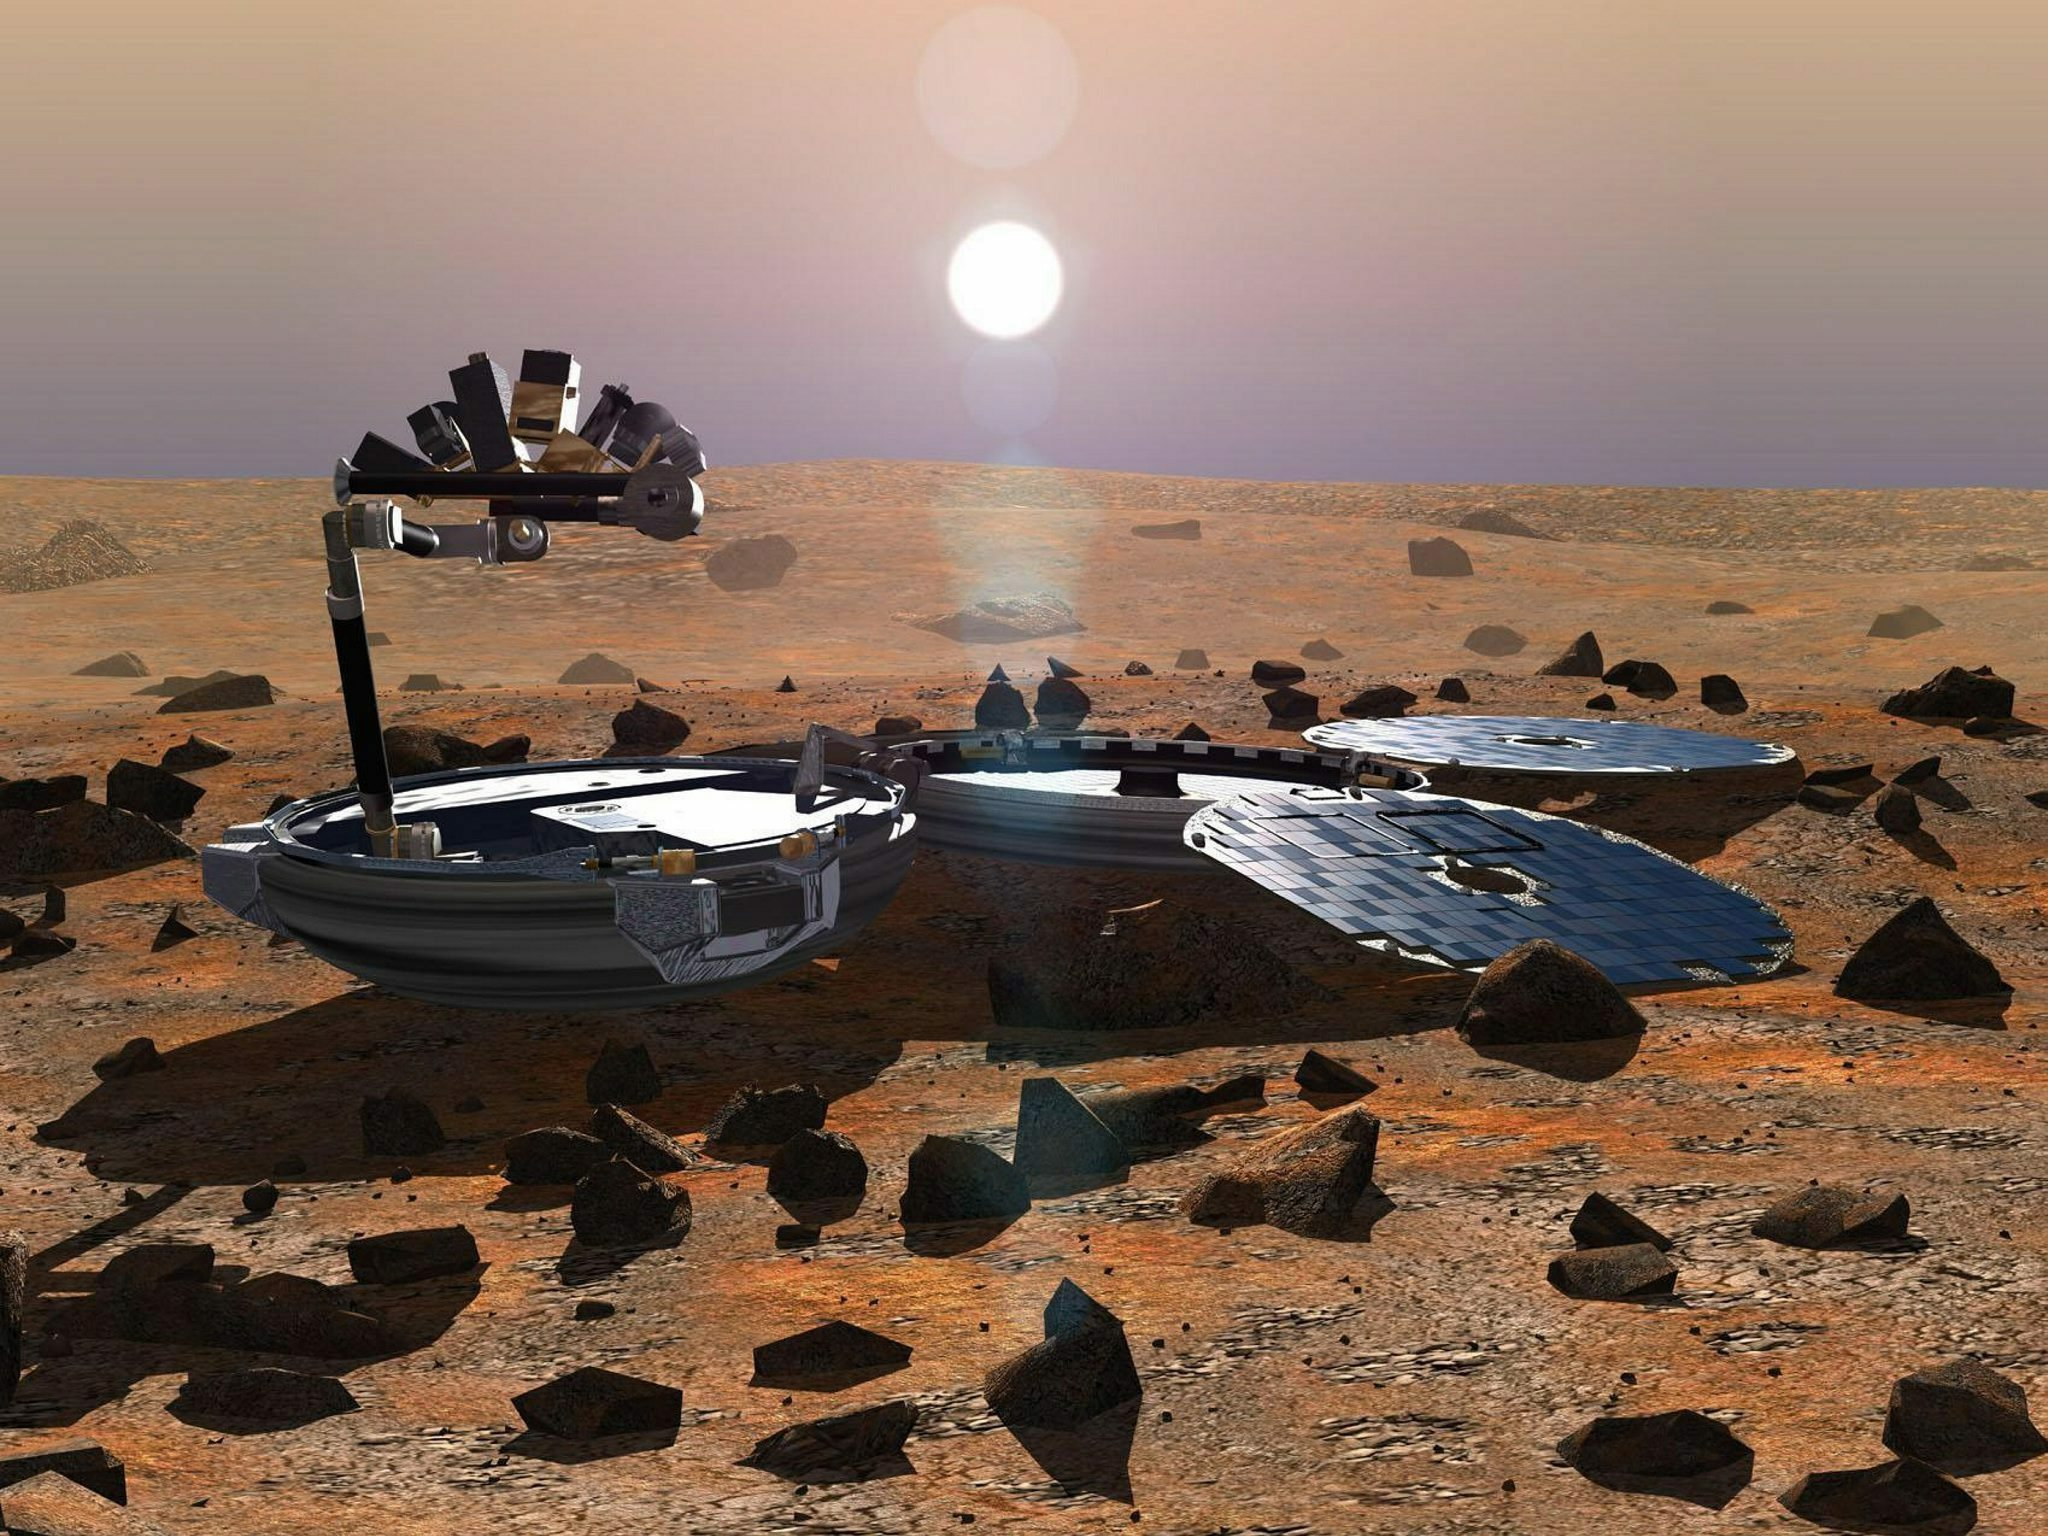 Beagle lander thought lost since 2003 is found on Mars ...